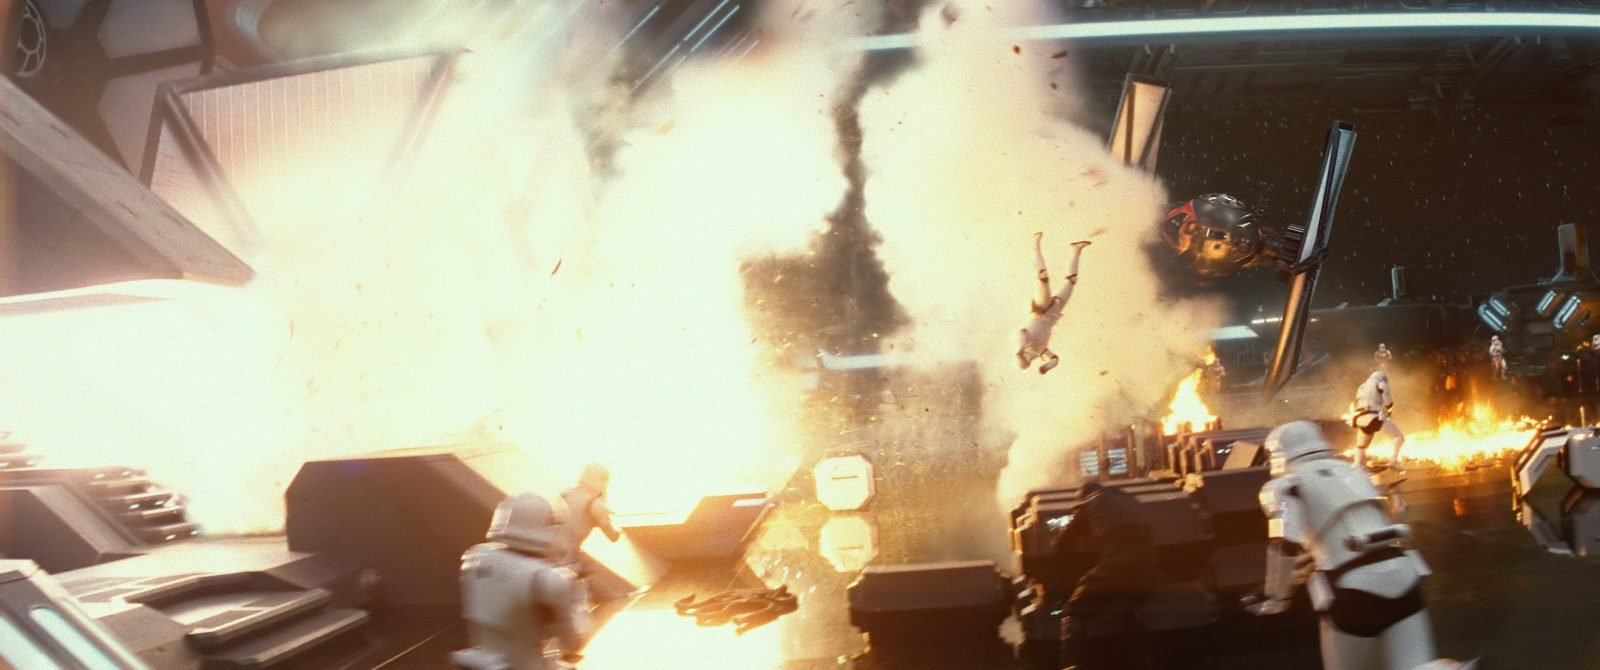 Star Wars VII The Force Awakens 31 - Destruction blast